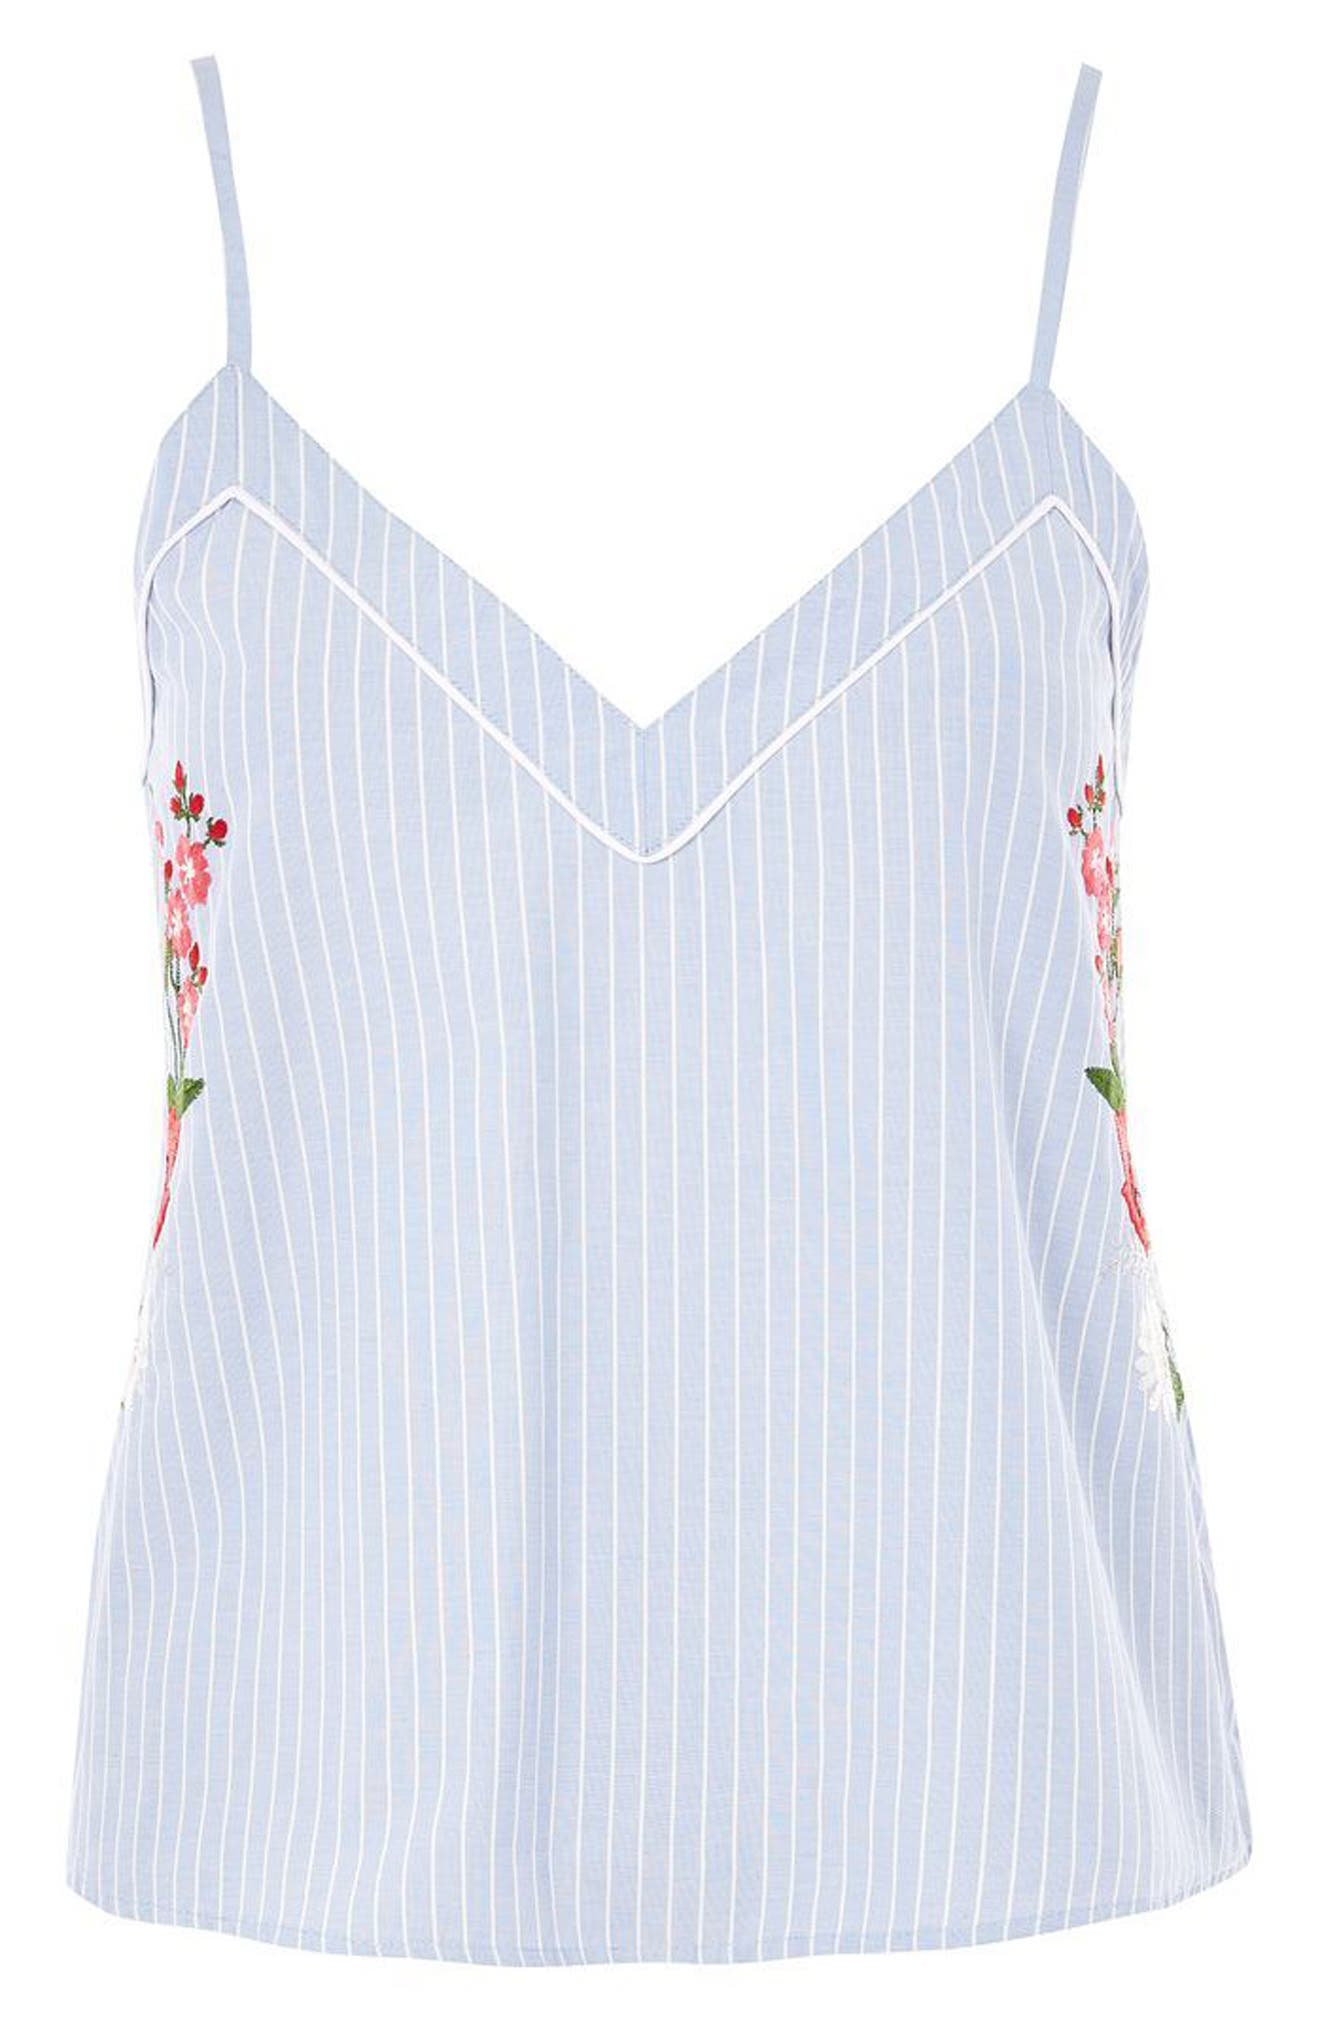 Floral Embroidered Stripe Camisole,                             Alternate thumbnail 3, color,                             400